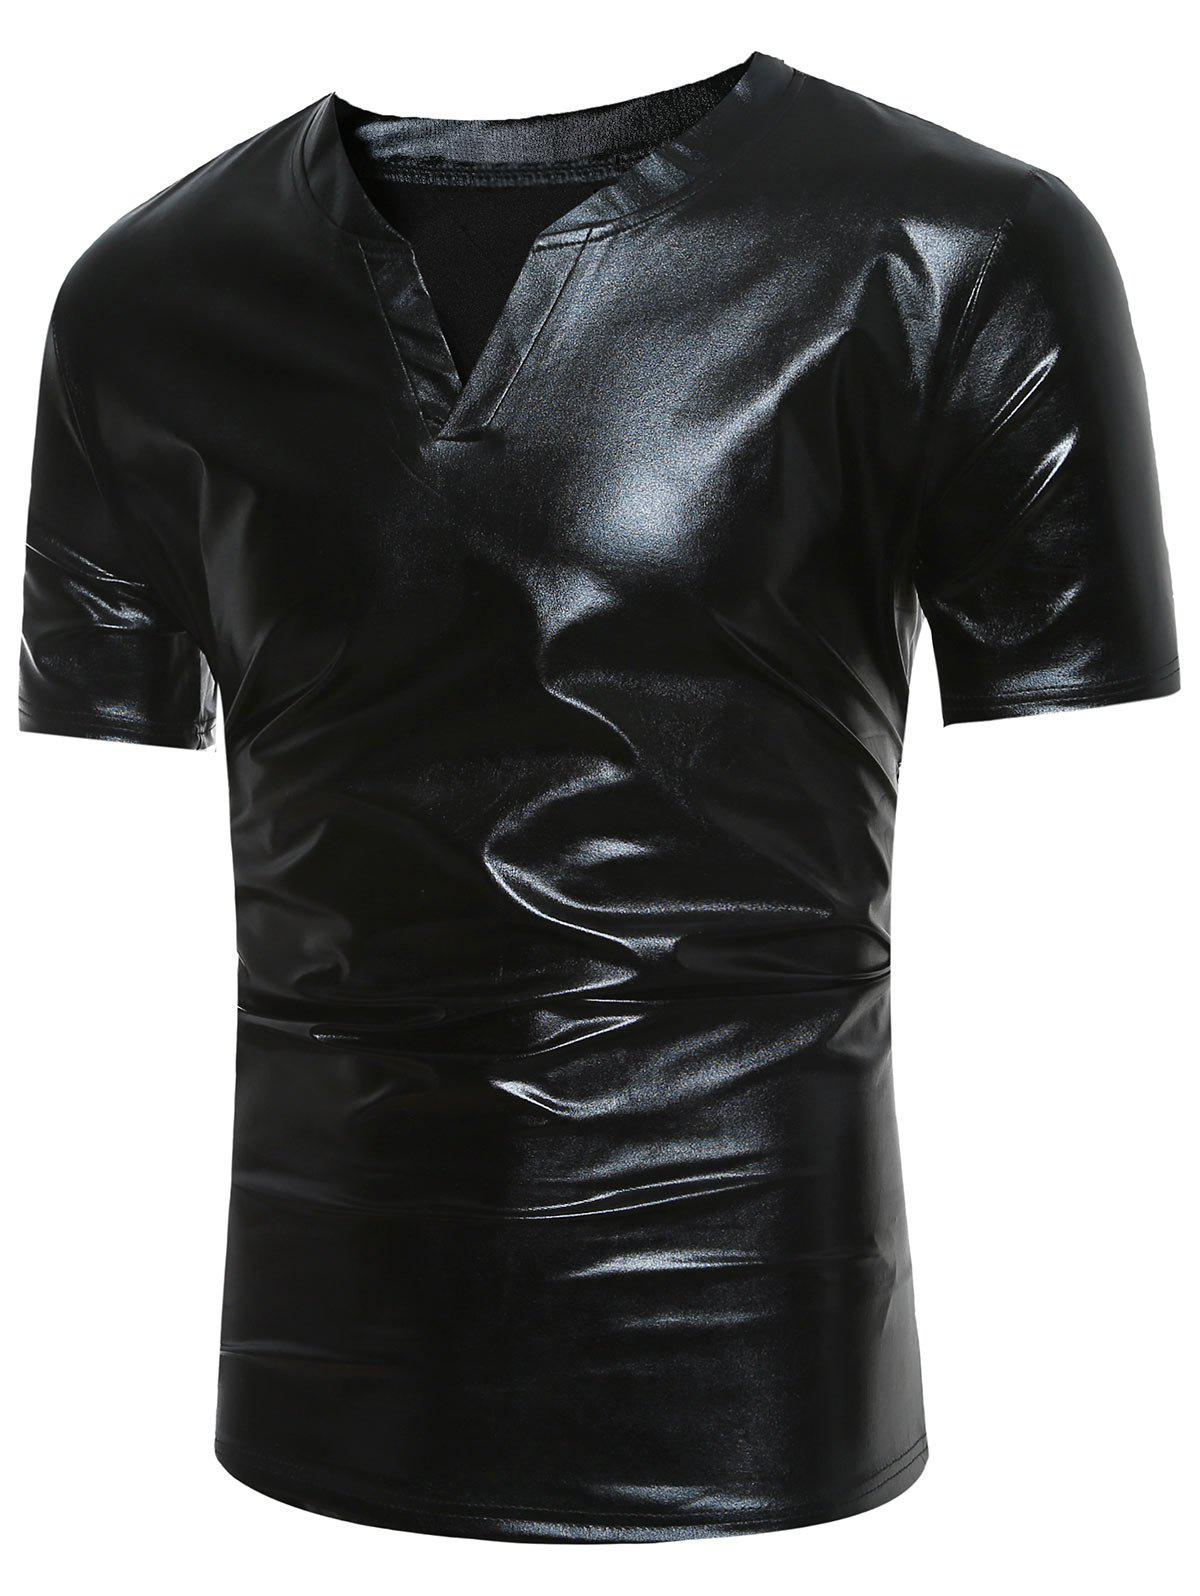 Notch Neck Short Sleeve Metallic Tee - BLACK M